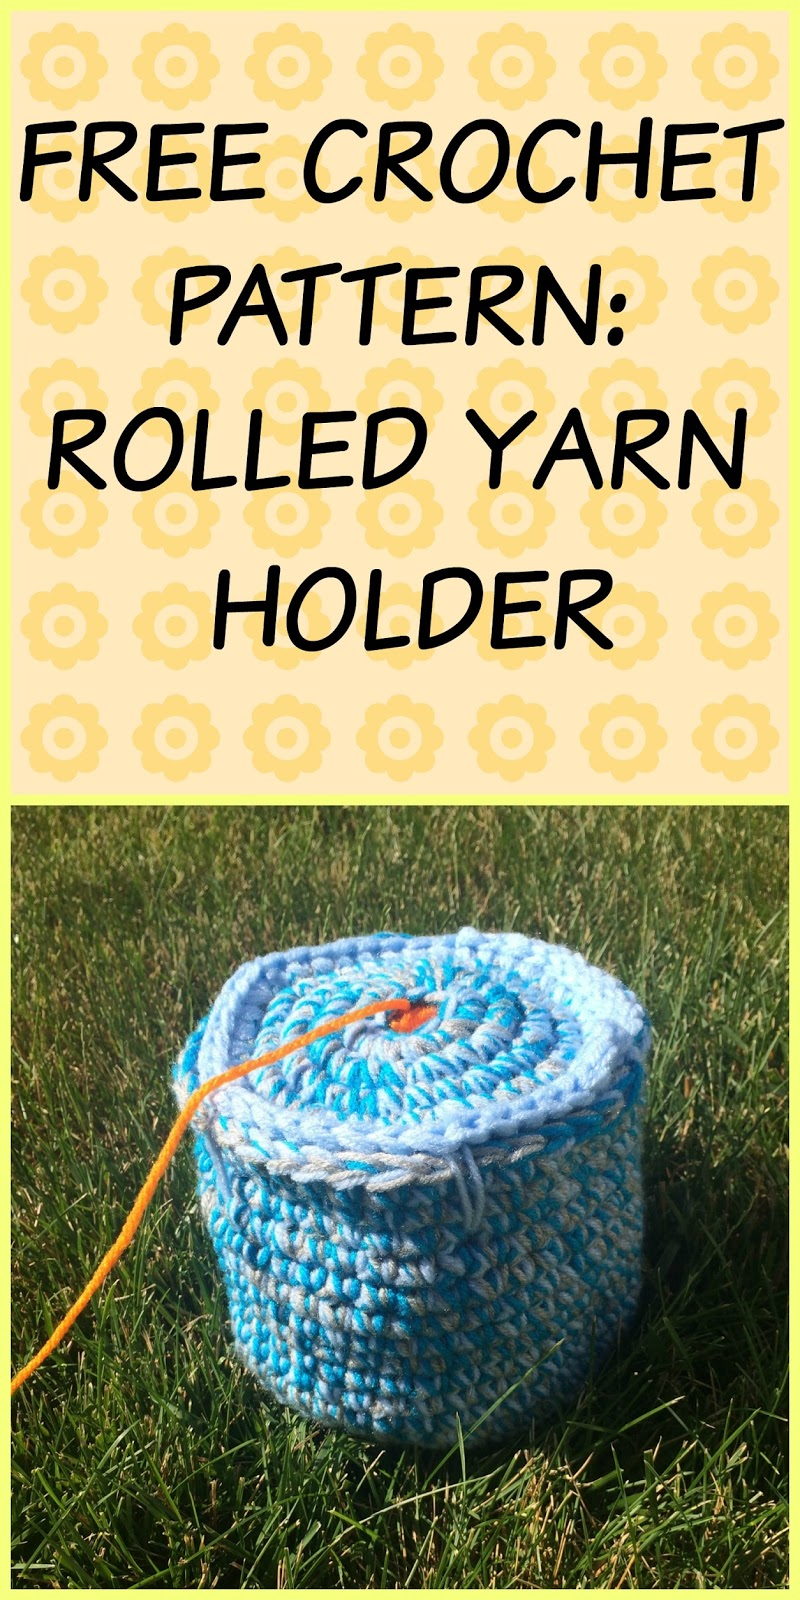 FREE Crochet Pattern for a Rolled Yarn Holder